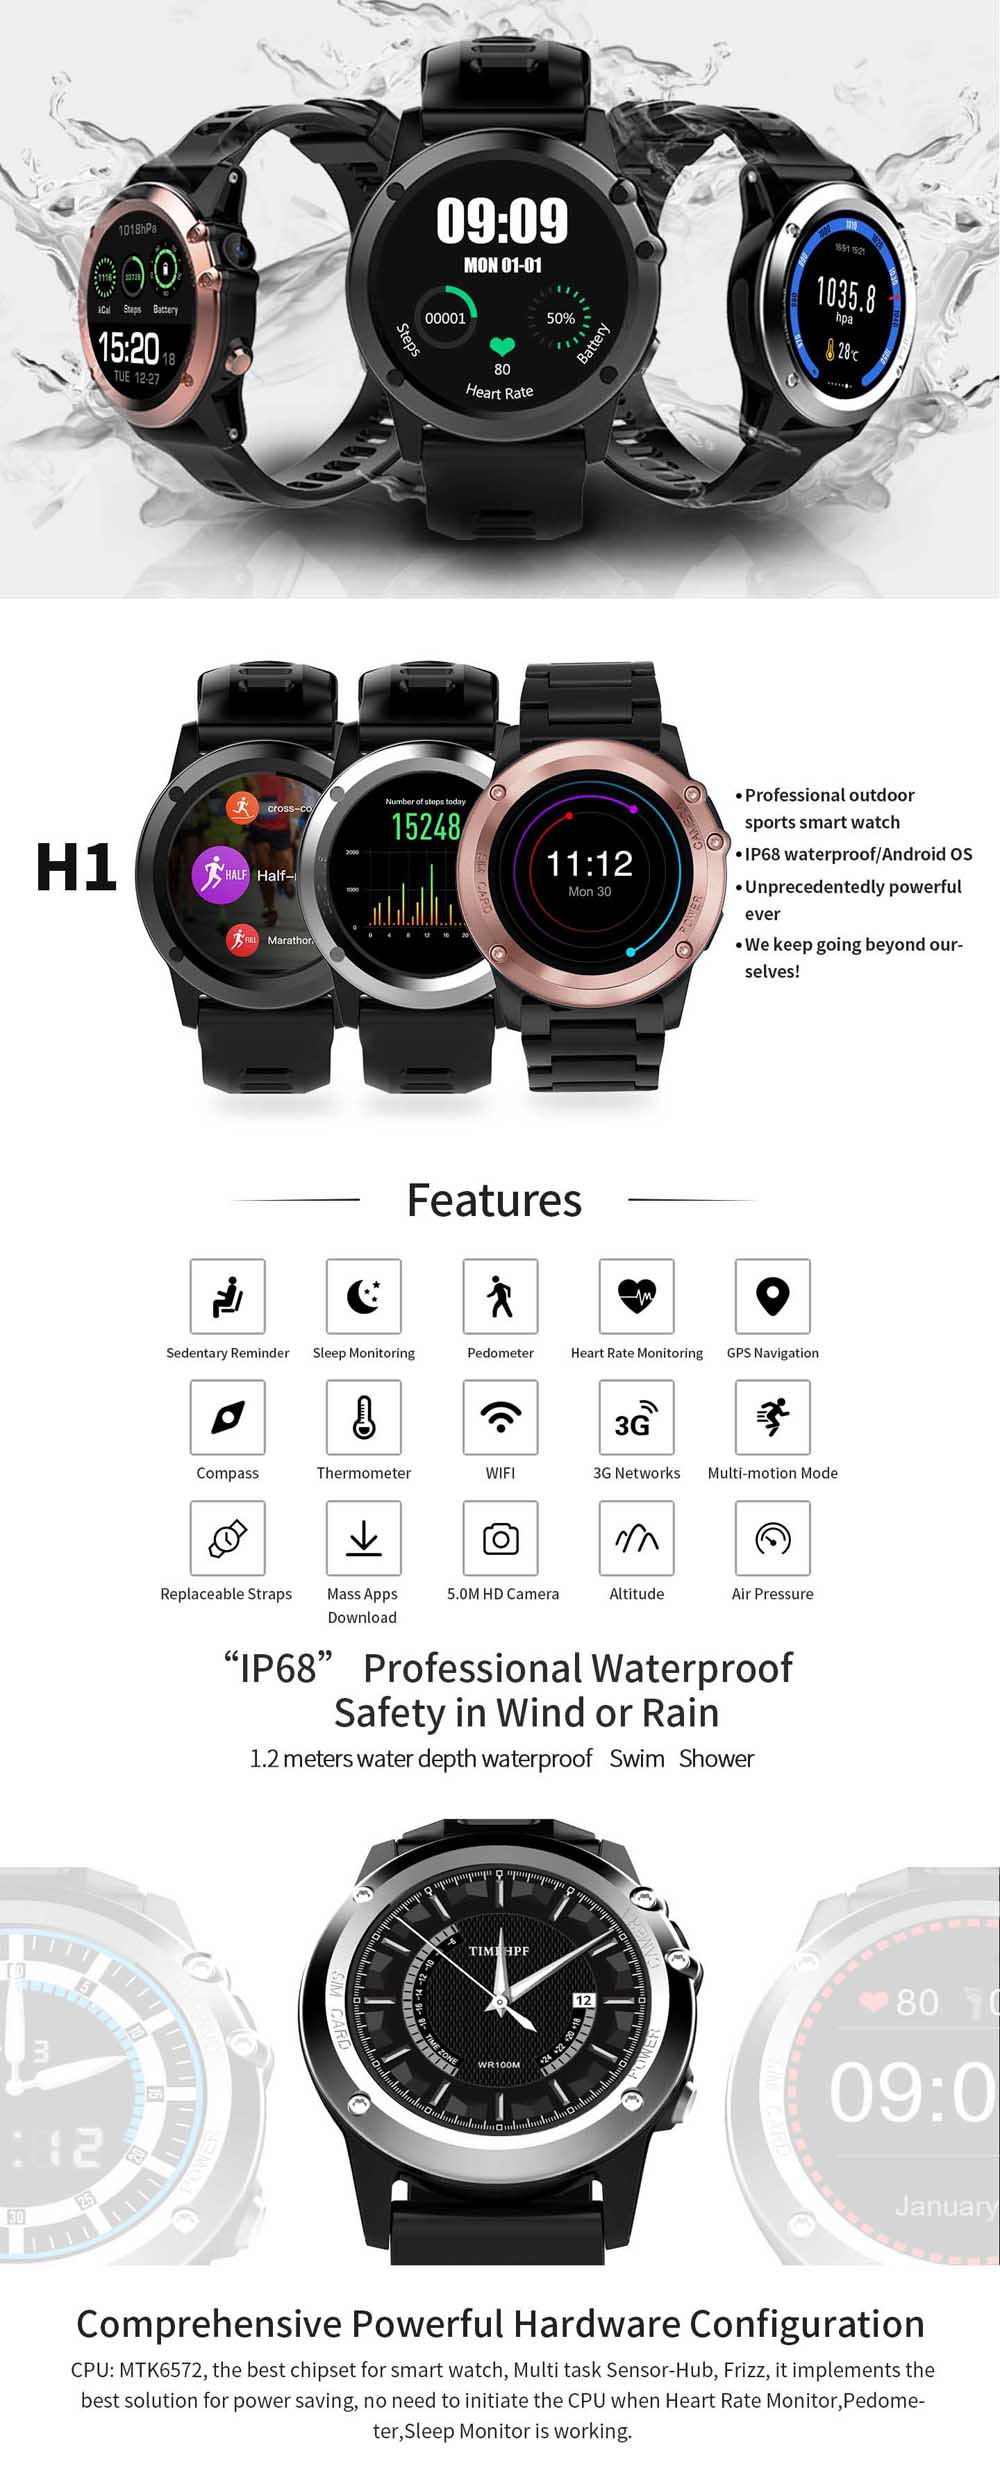 H1-JM01 Heart Rate Smart Watch Thermometer GPS Nevigation Motor